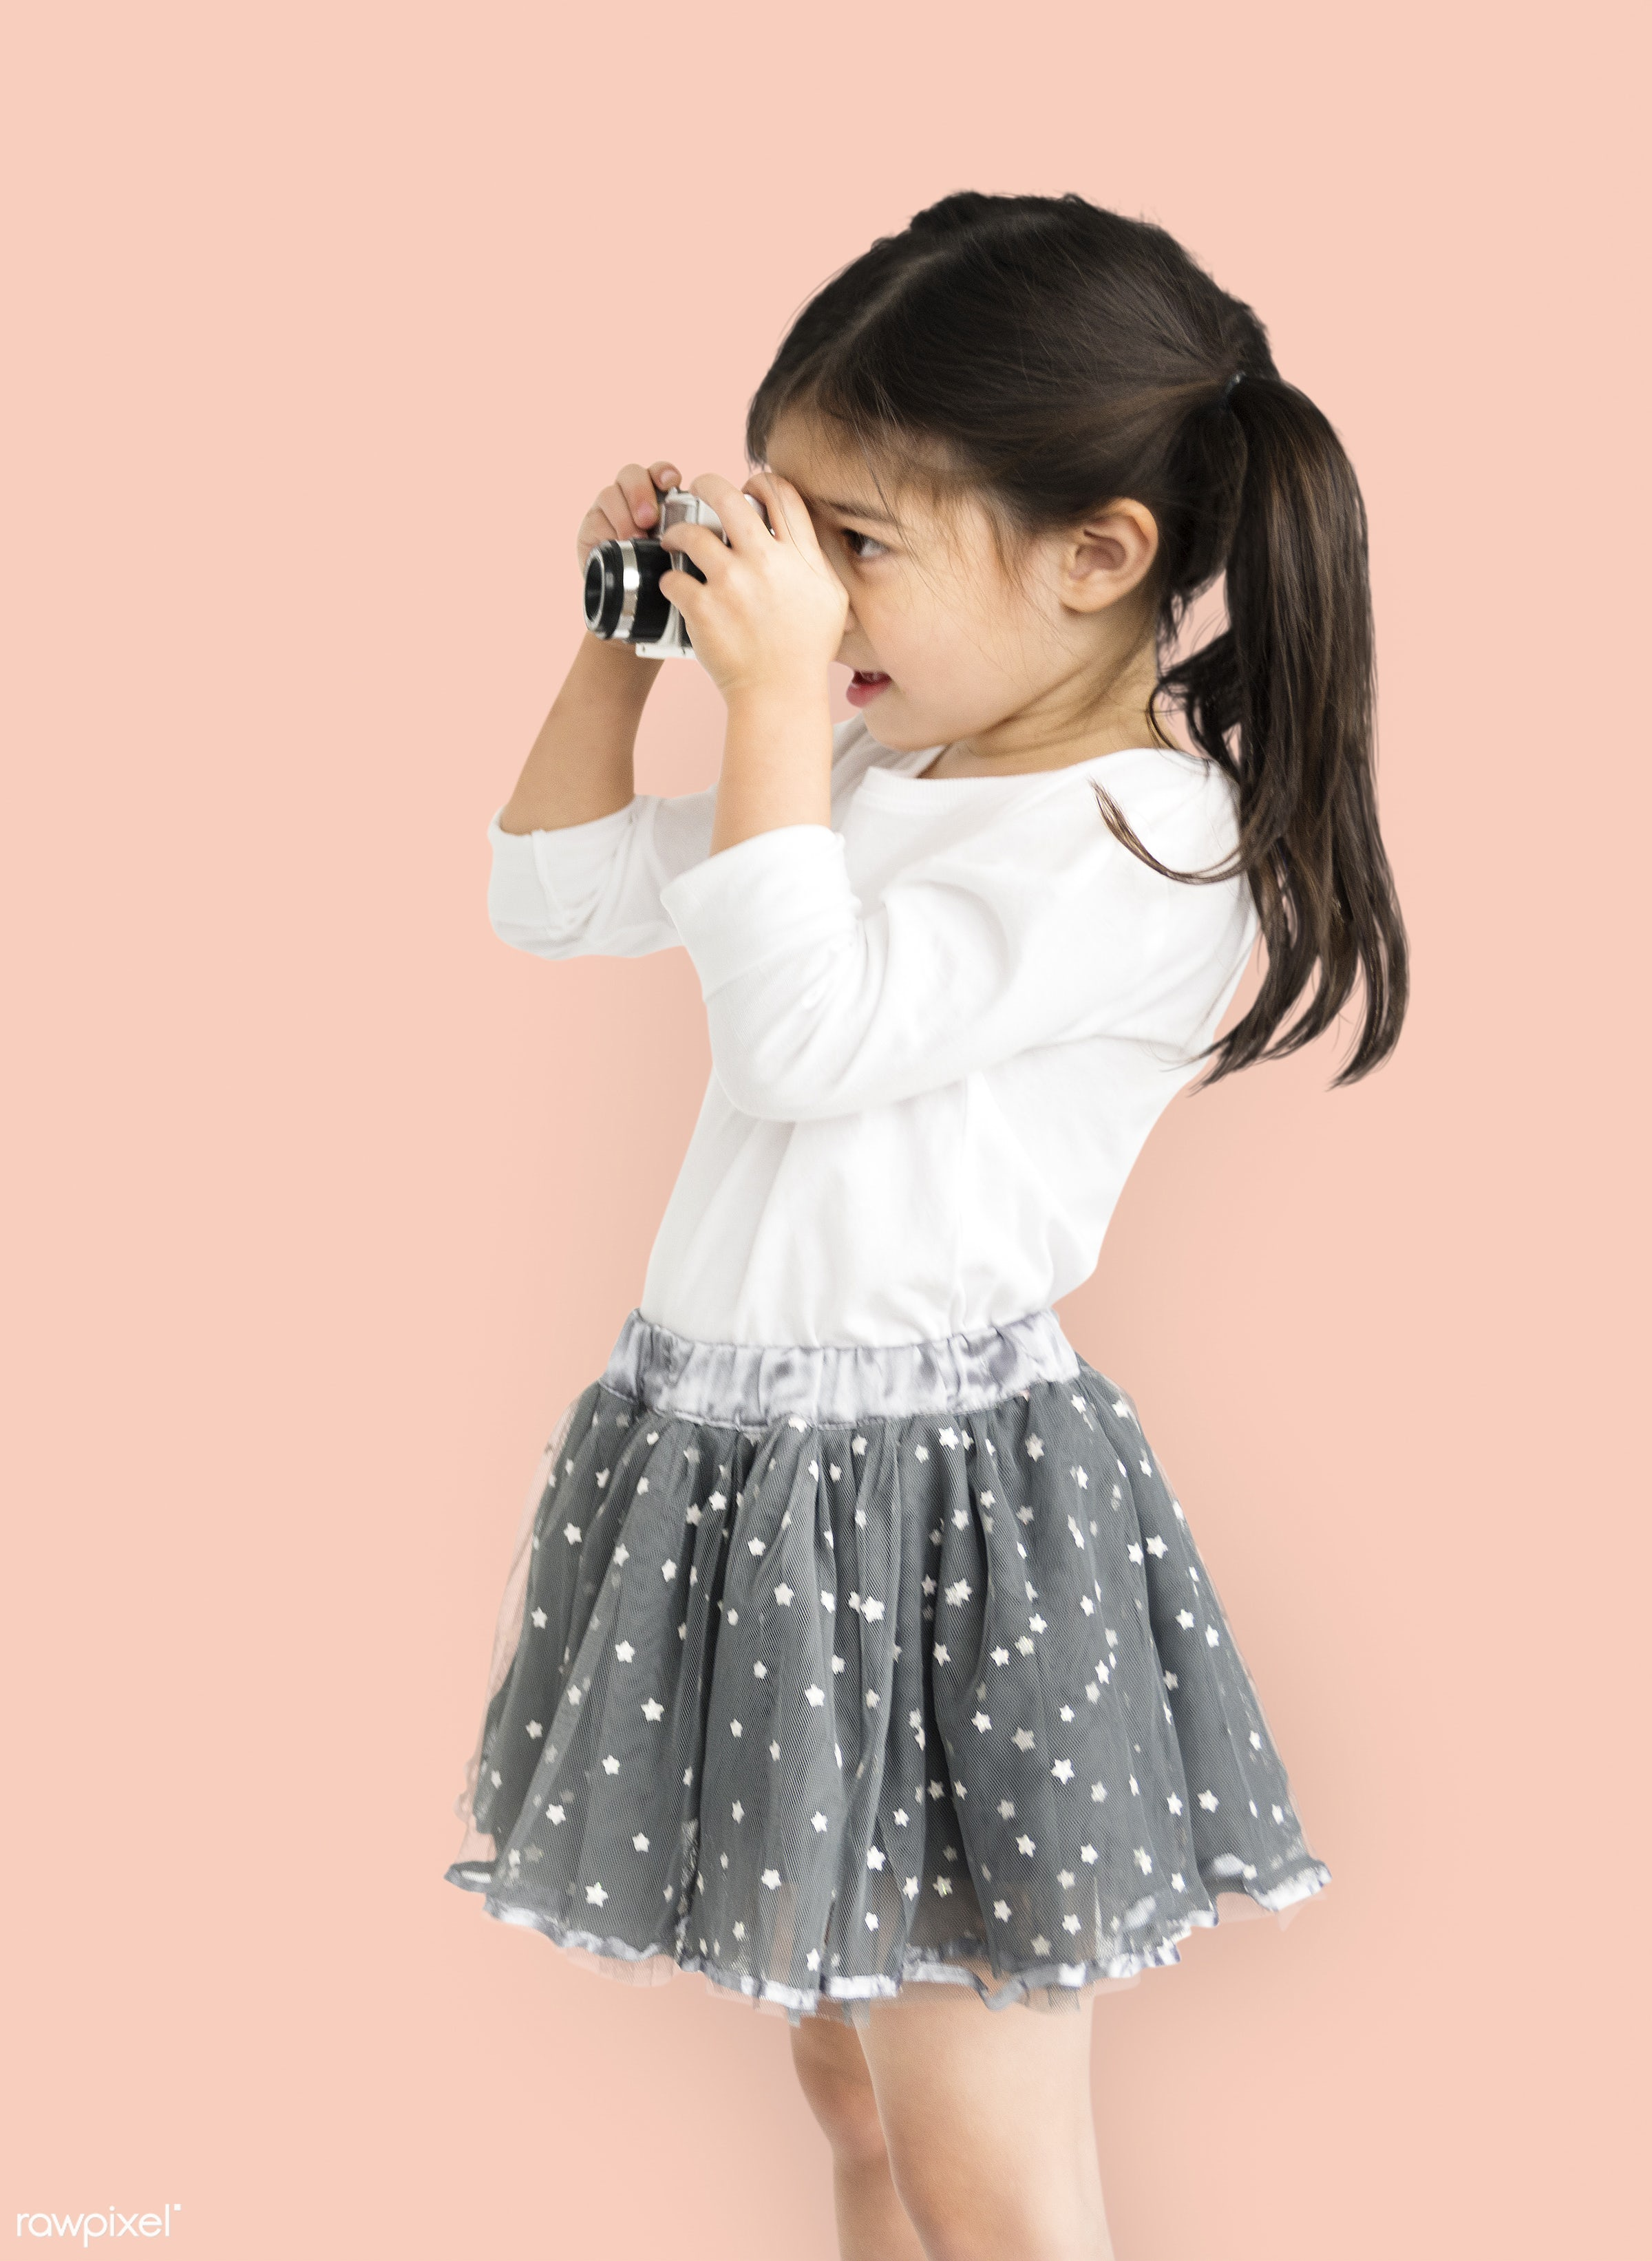 expression, studio, person, photograph, little, recreation, people, kid, lifestyle, photographer, taking photo, smiling,...